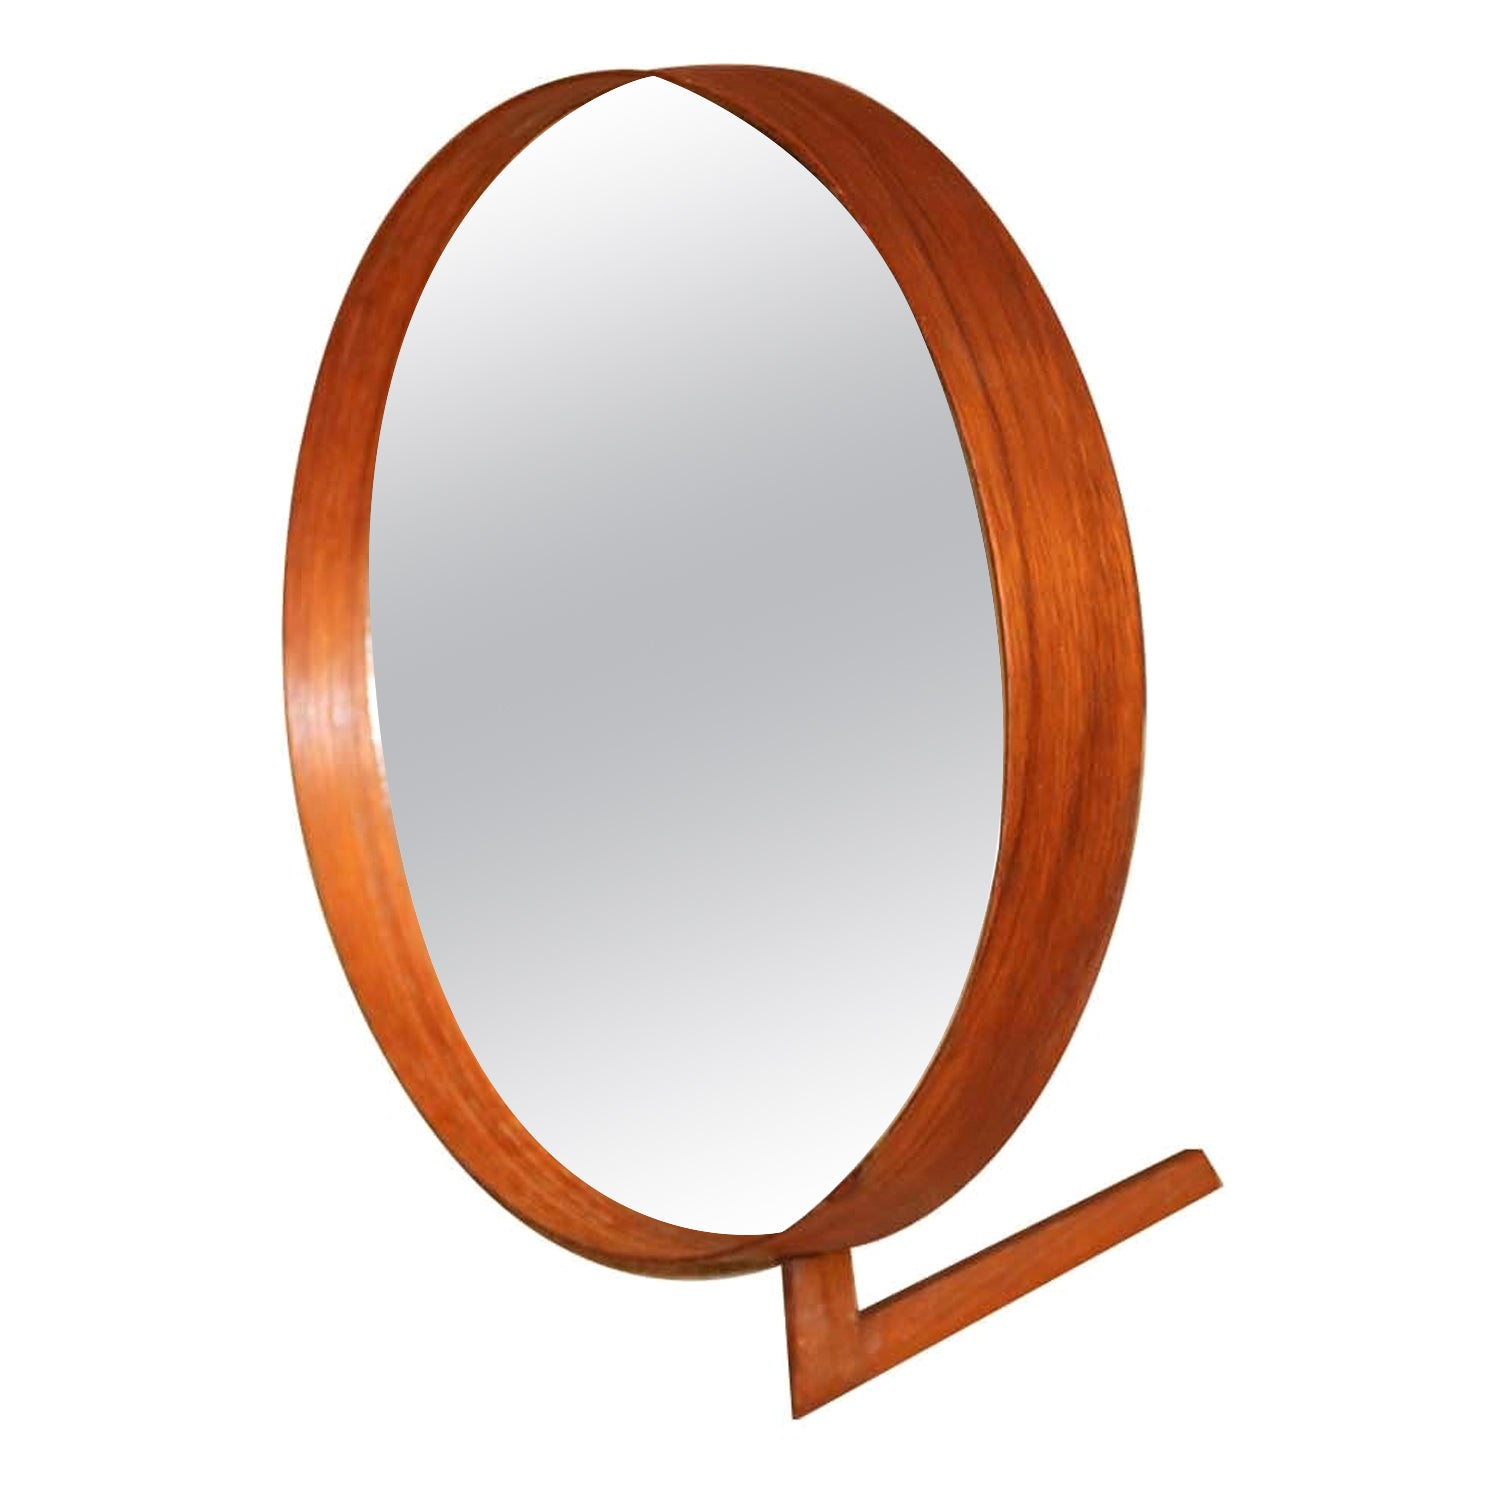 Midcentury Uno and Osten Kristiansson Teak Table Mirror Luxus, Sweden